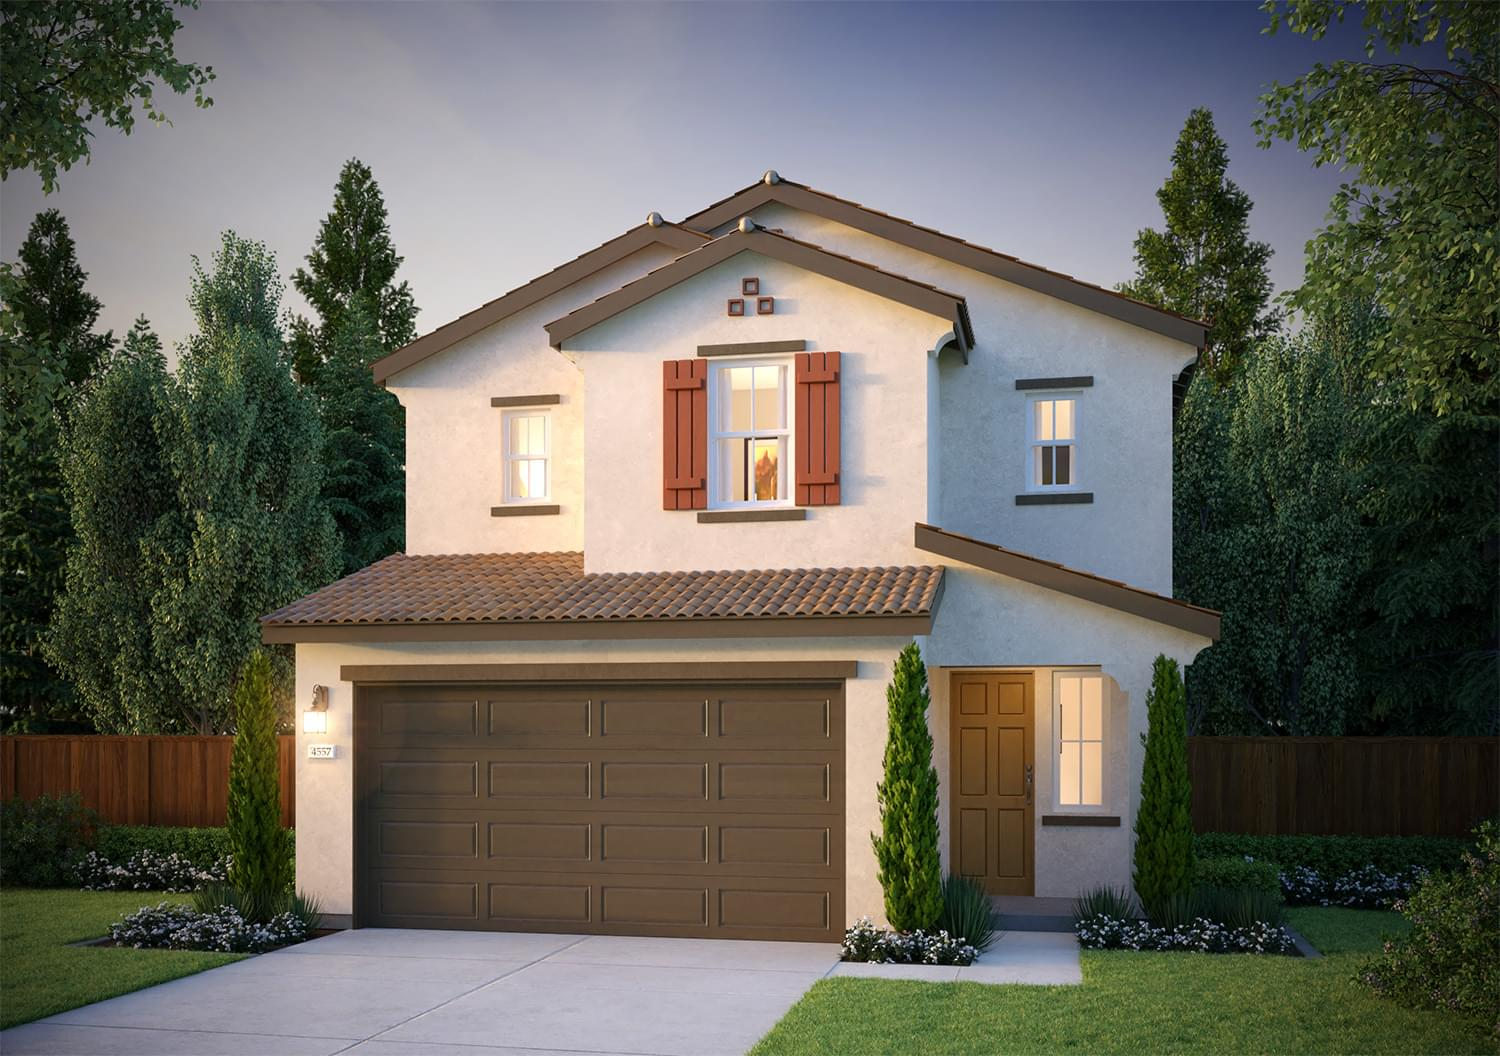 520 Shearwater Street in Hollister, CA by DeNova Homes